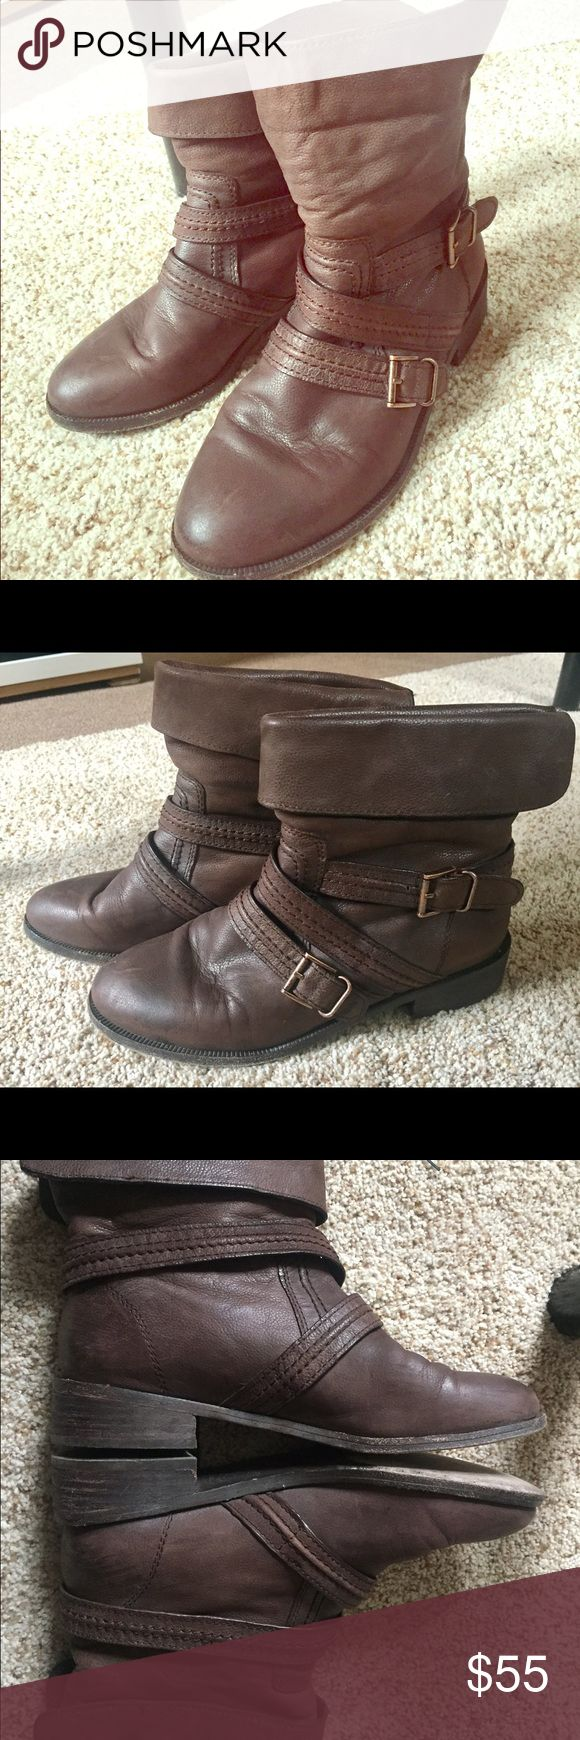 Joie ankle boots Brown ankle boots super confortable. It's a bit worn but still in great shape. Joie's designs are constantly inspired by the Southern California lifestyle and its casual, yet sophisticated way of life. joie Shoes Ankle Boots & Booties